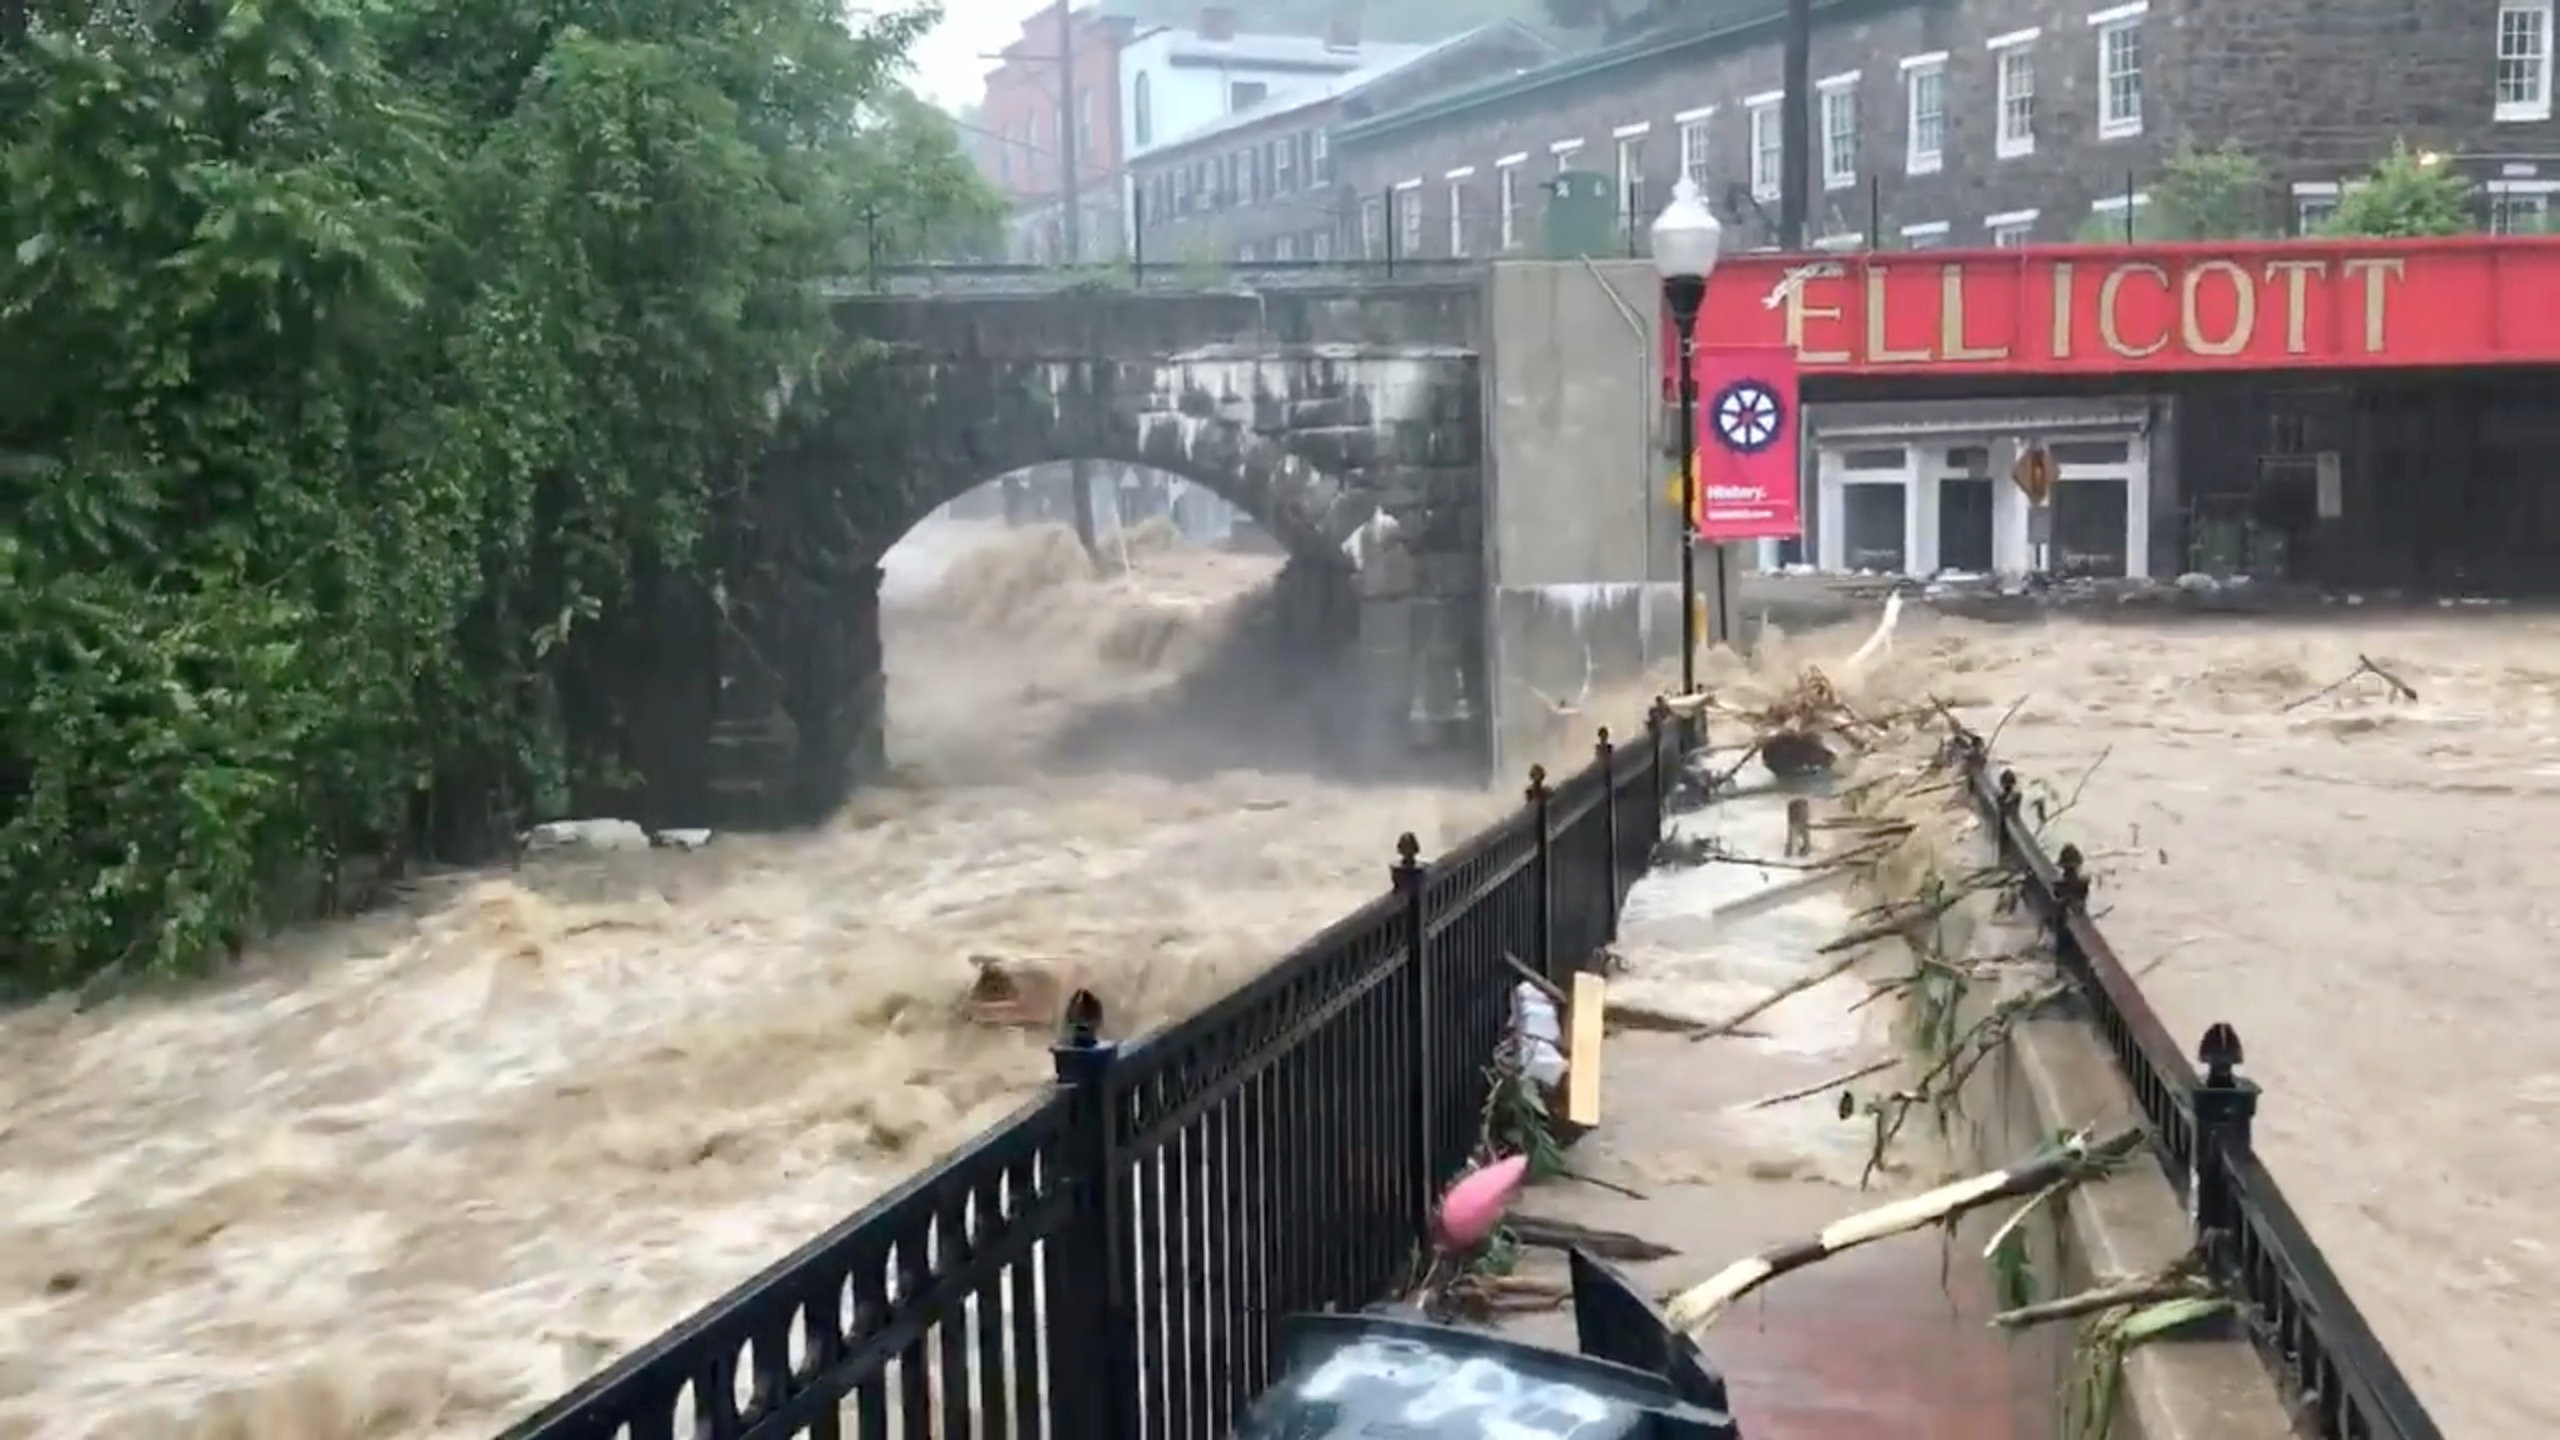 Flooding is seen in Ellicott City, Maryland, U.S. May 27, 2018, in this still image from video from social media. Todd Marks/via REUTERS